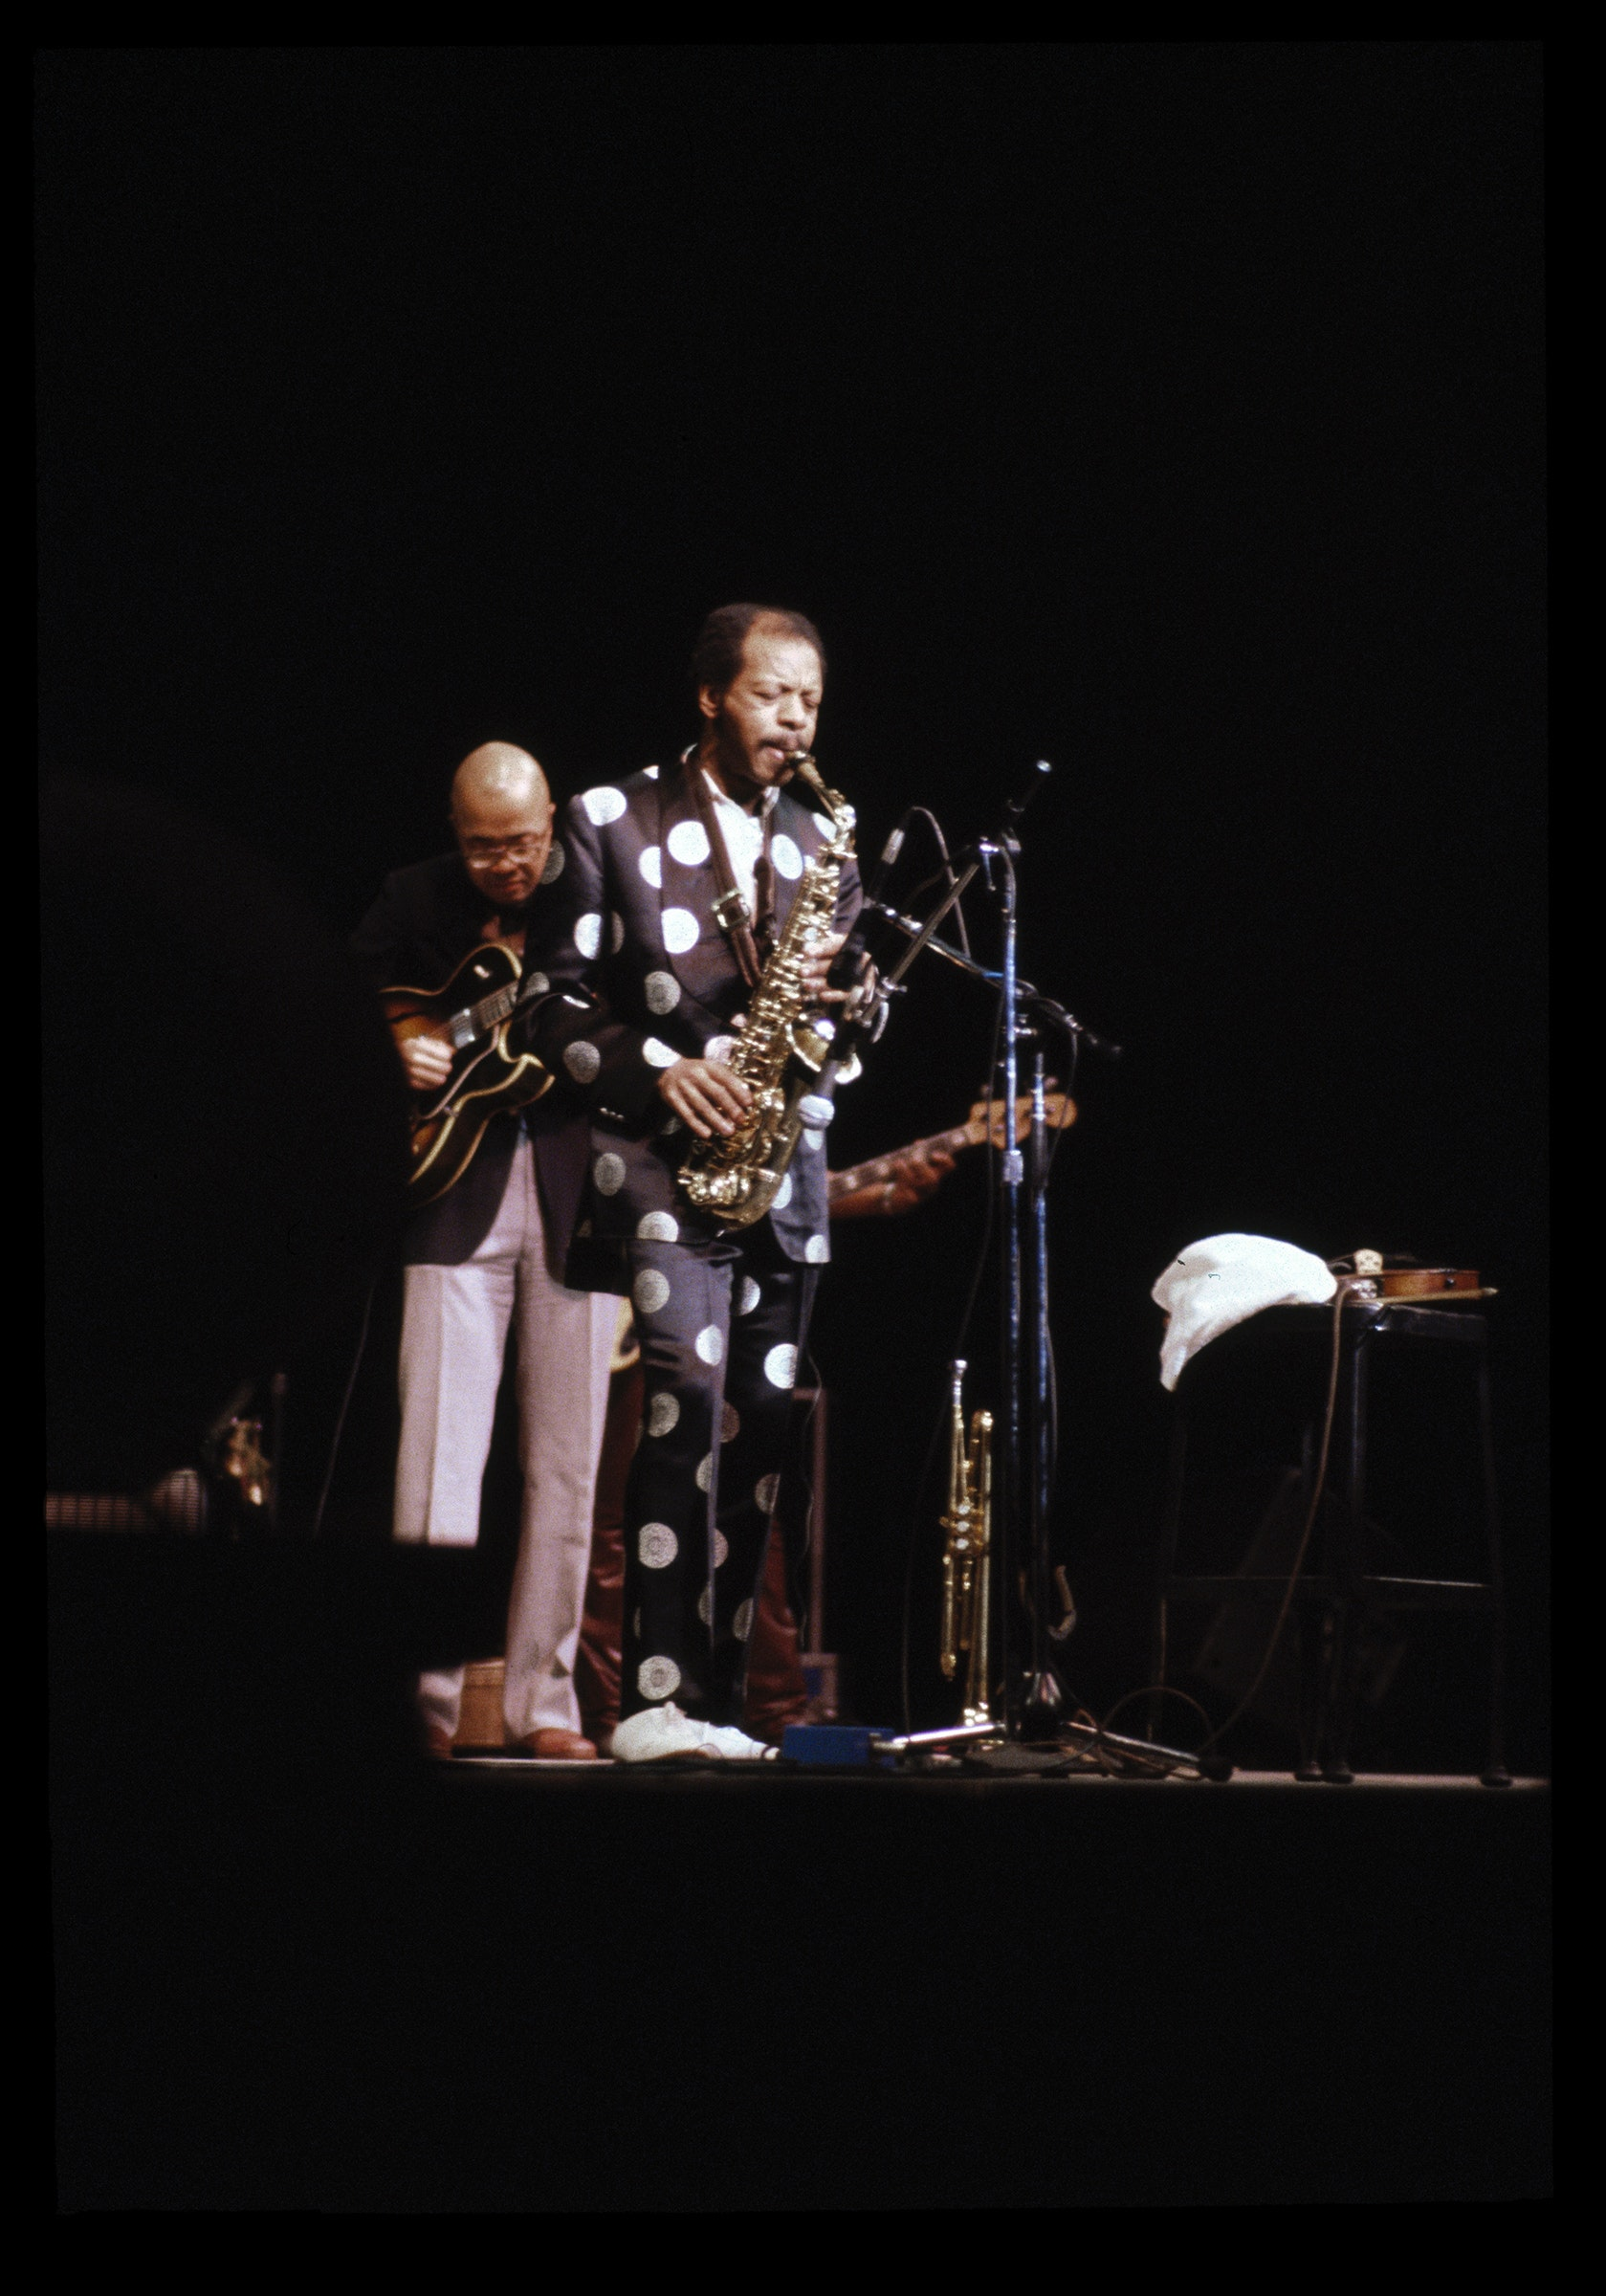 Ornette Coleman performing on stage